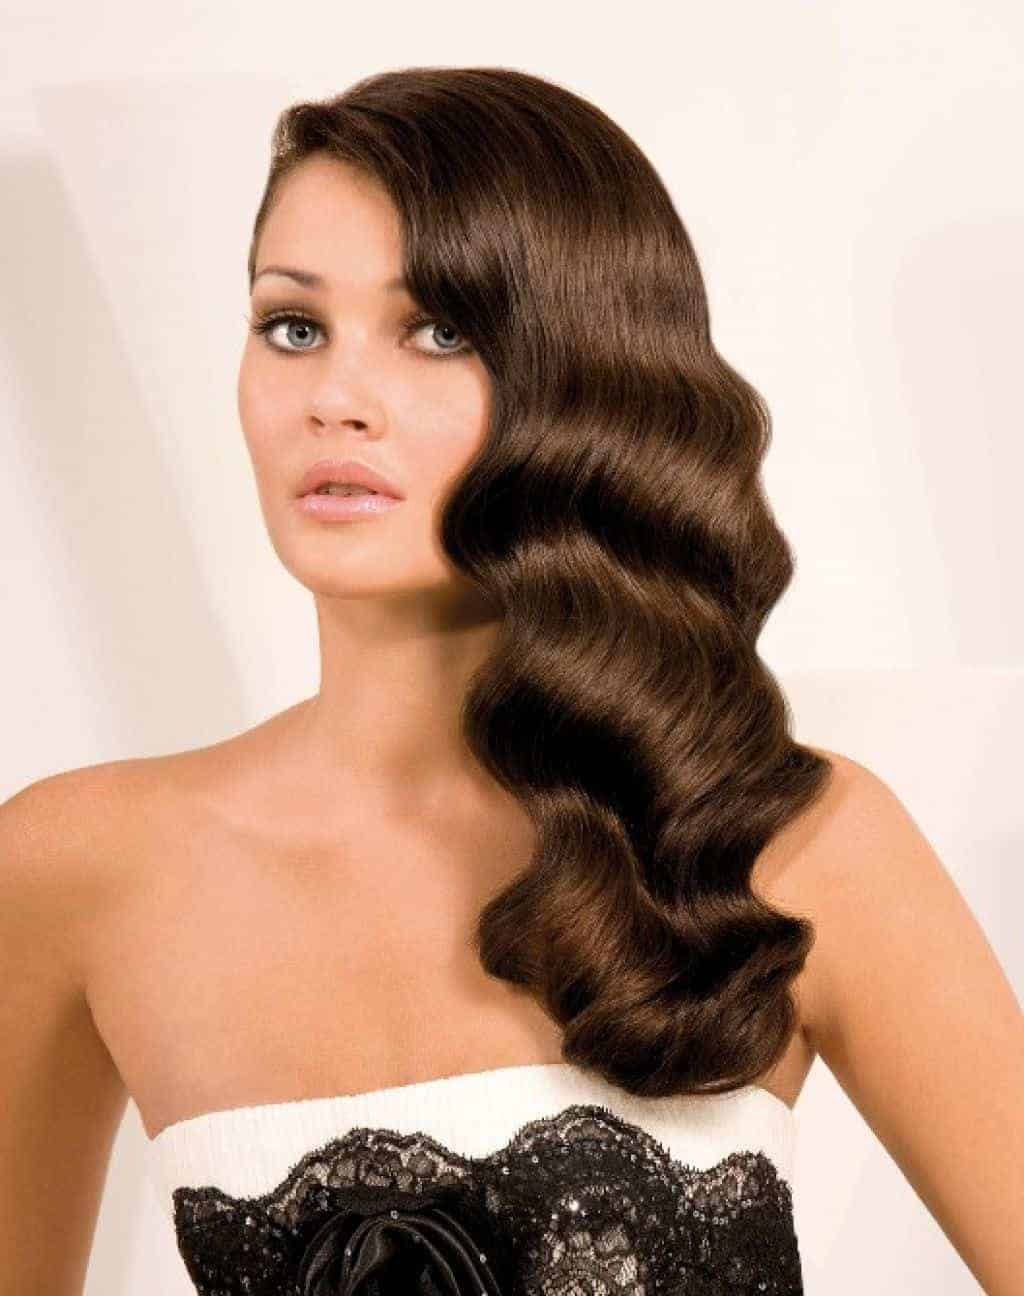 Vintage hairstyles for long hair and brown color